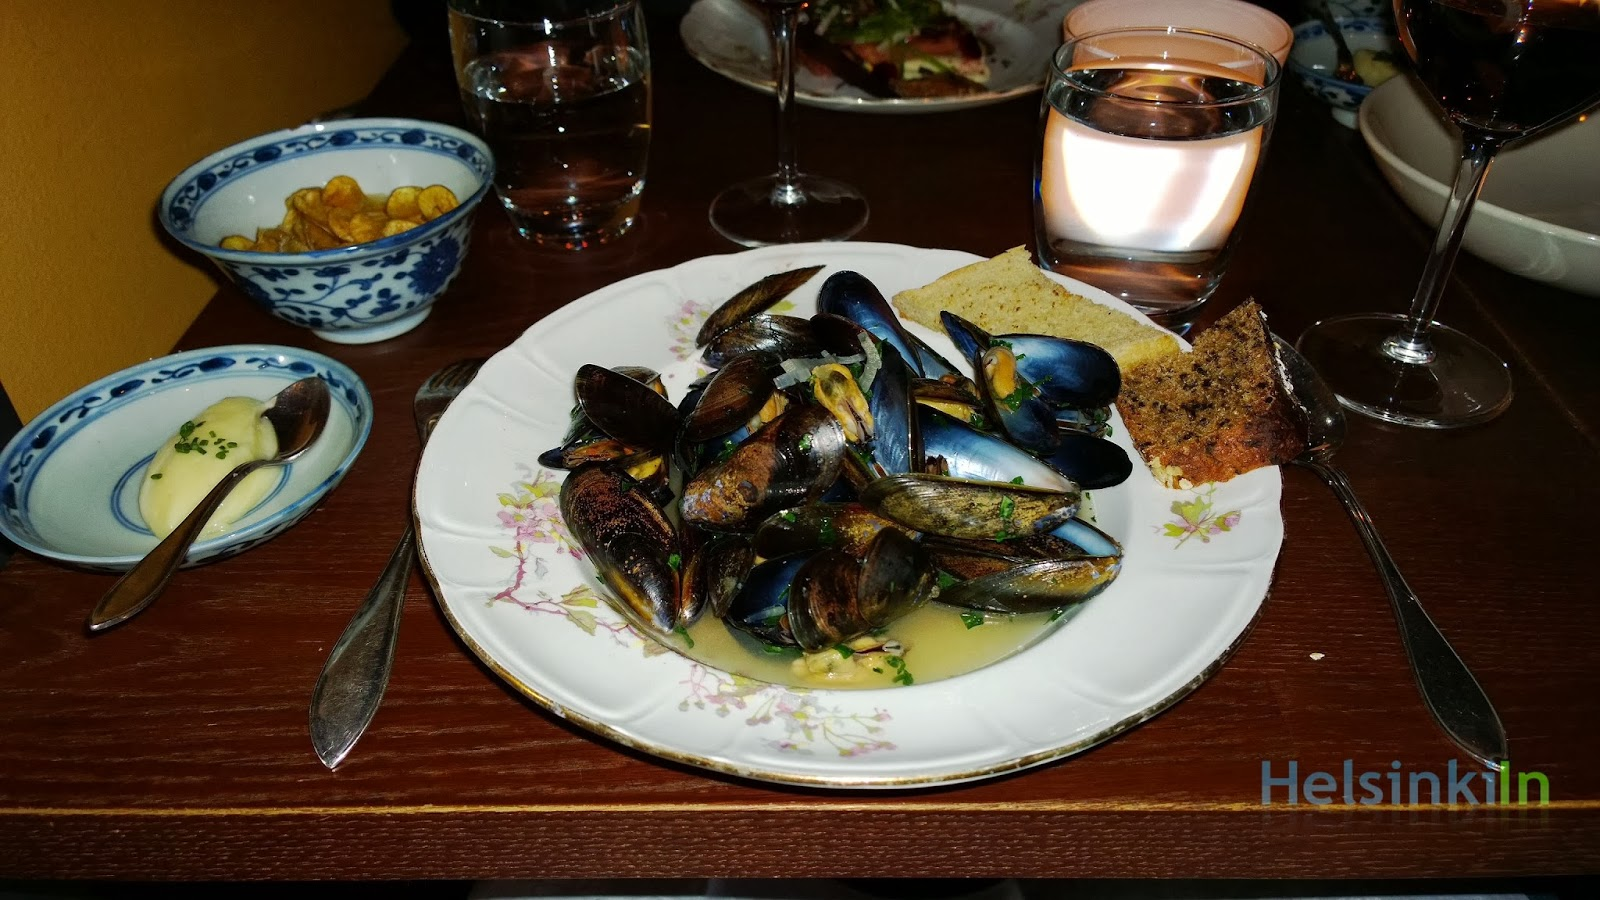 mussels with homemade potato chips at Ravintola Kolo